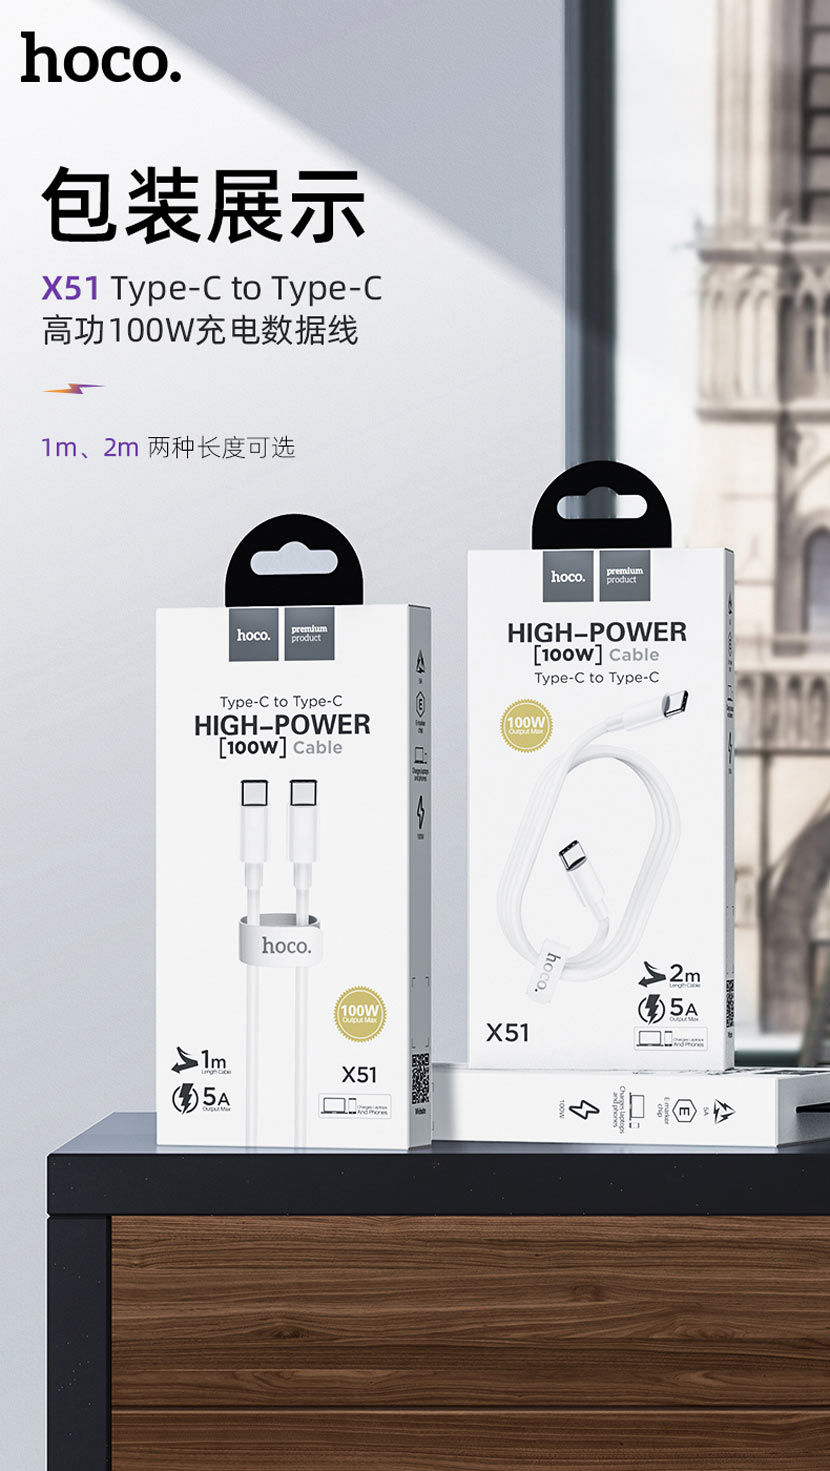 hoco news x51 high power 100w charging data cable package cn